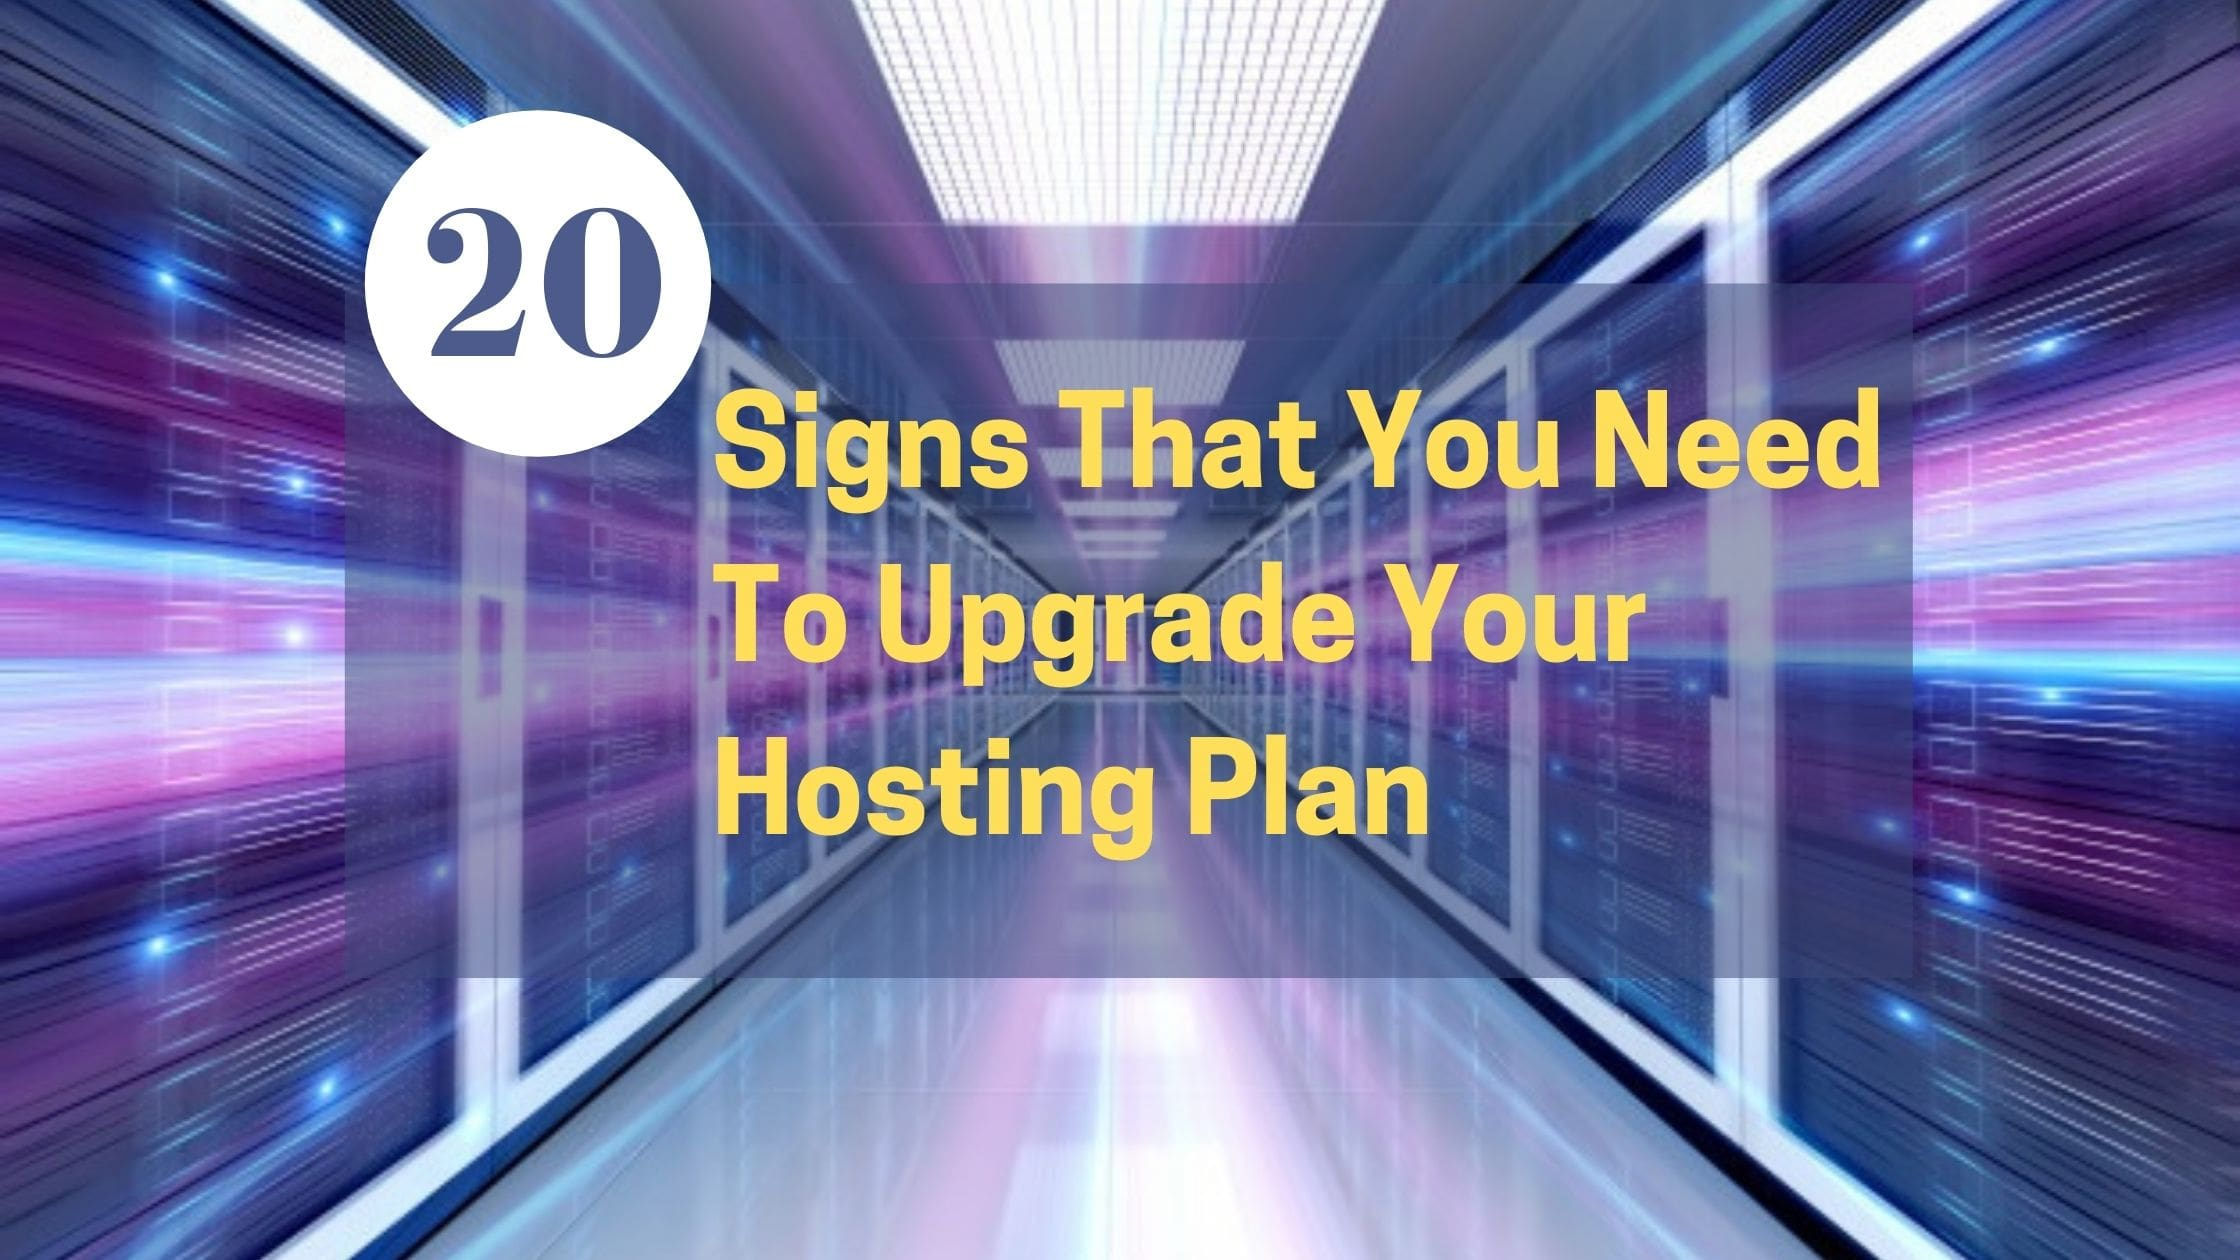 20 Signs That You Need To Upgrade Your Hosting Plan